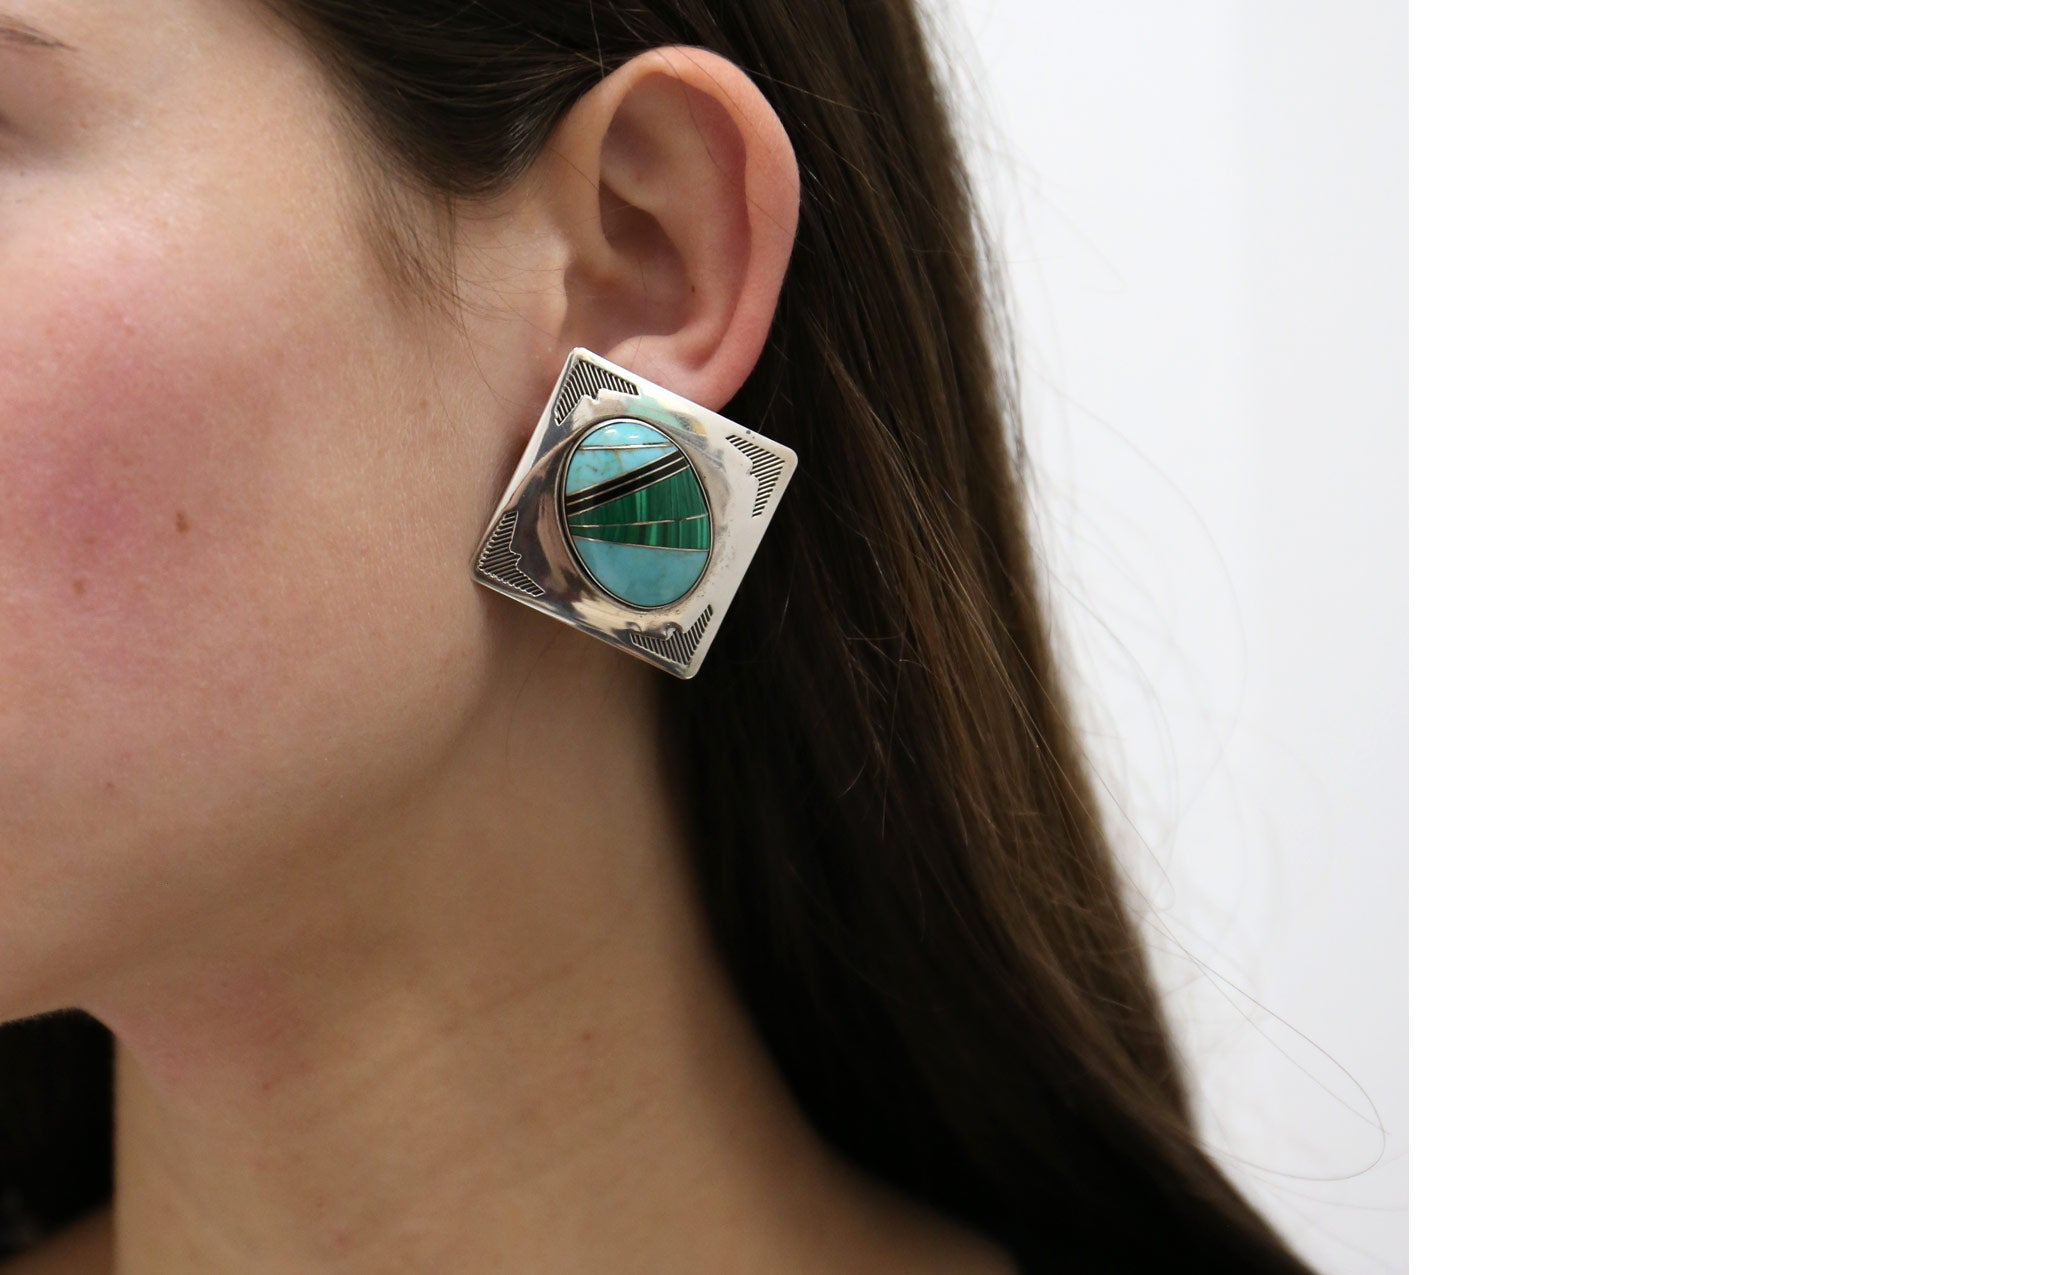 Cobell Earrings